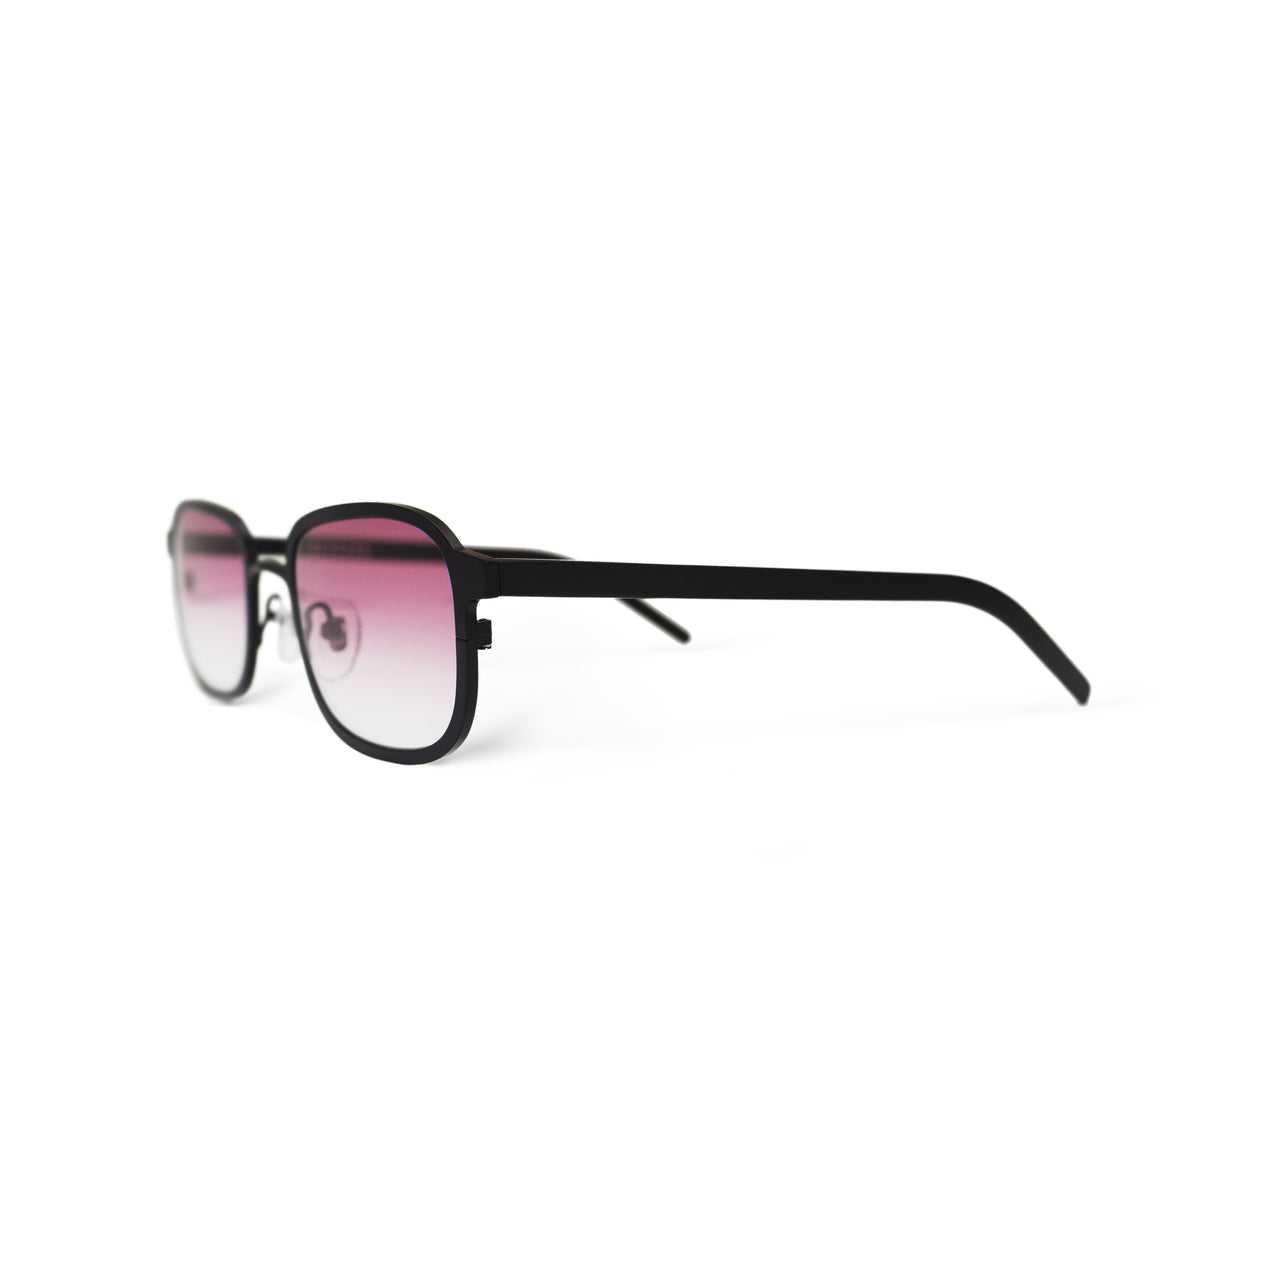 Metal. Gloss Black. Blush Lens. - BLYSZAK eyewear  - eyewear, optical, sunglasses